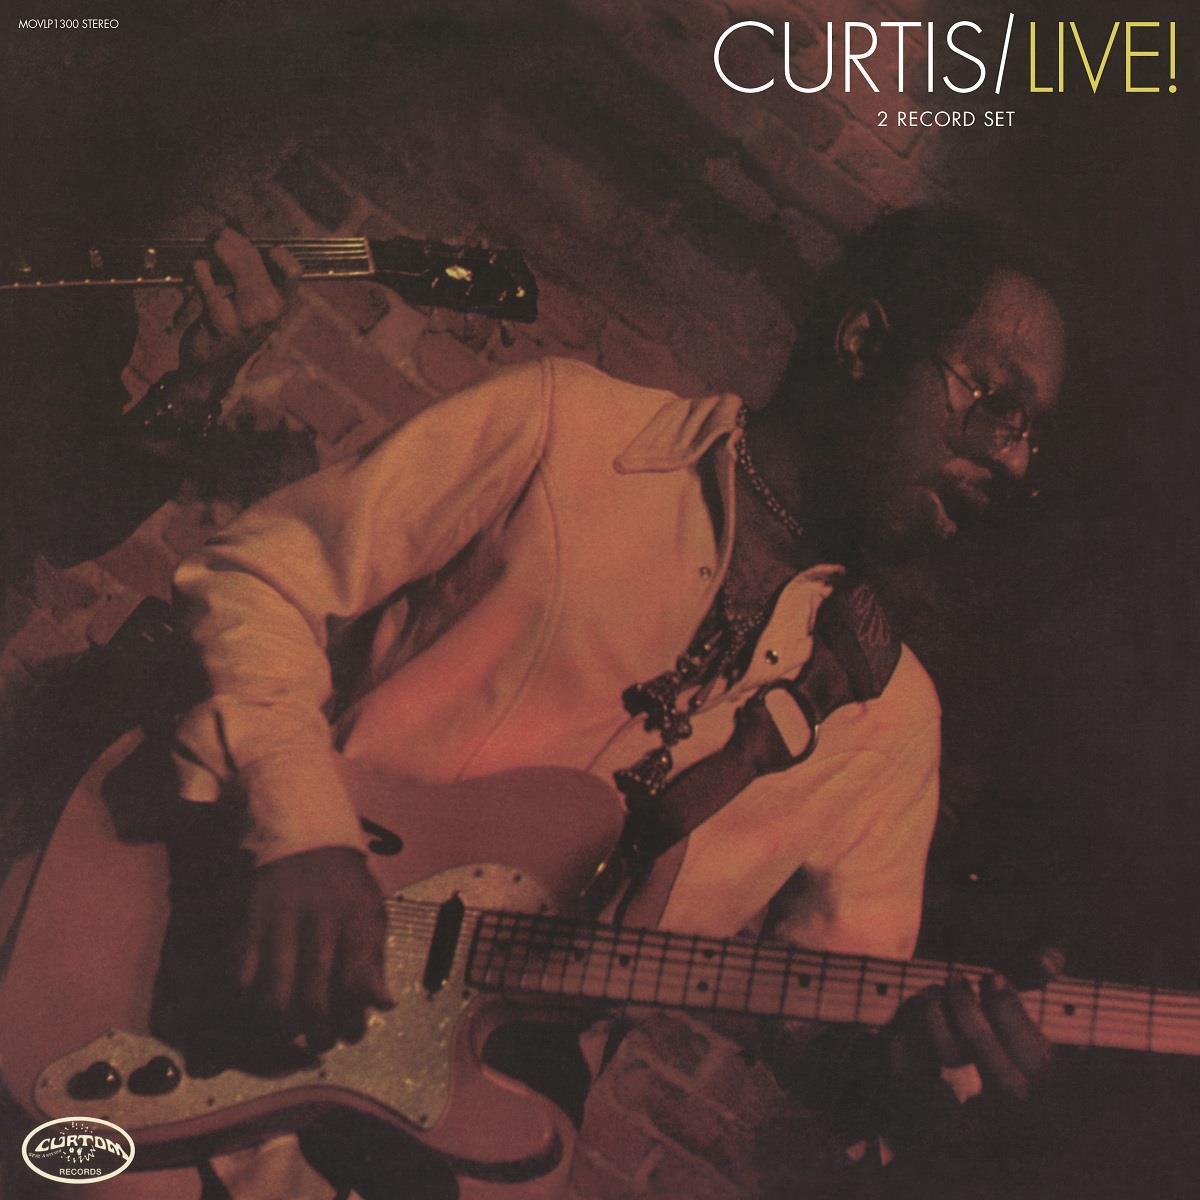 MOVLP1300 Music on Vinyl  Curtis Mayfield Live! (Expanded) (2LP)